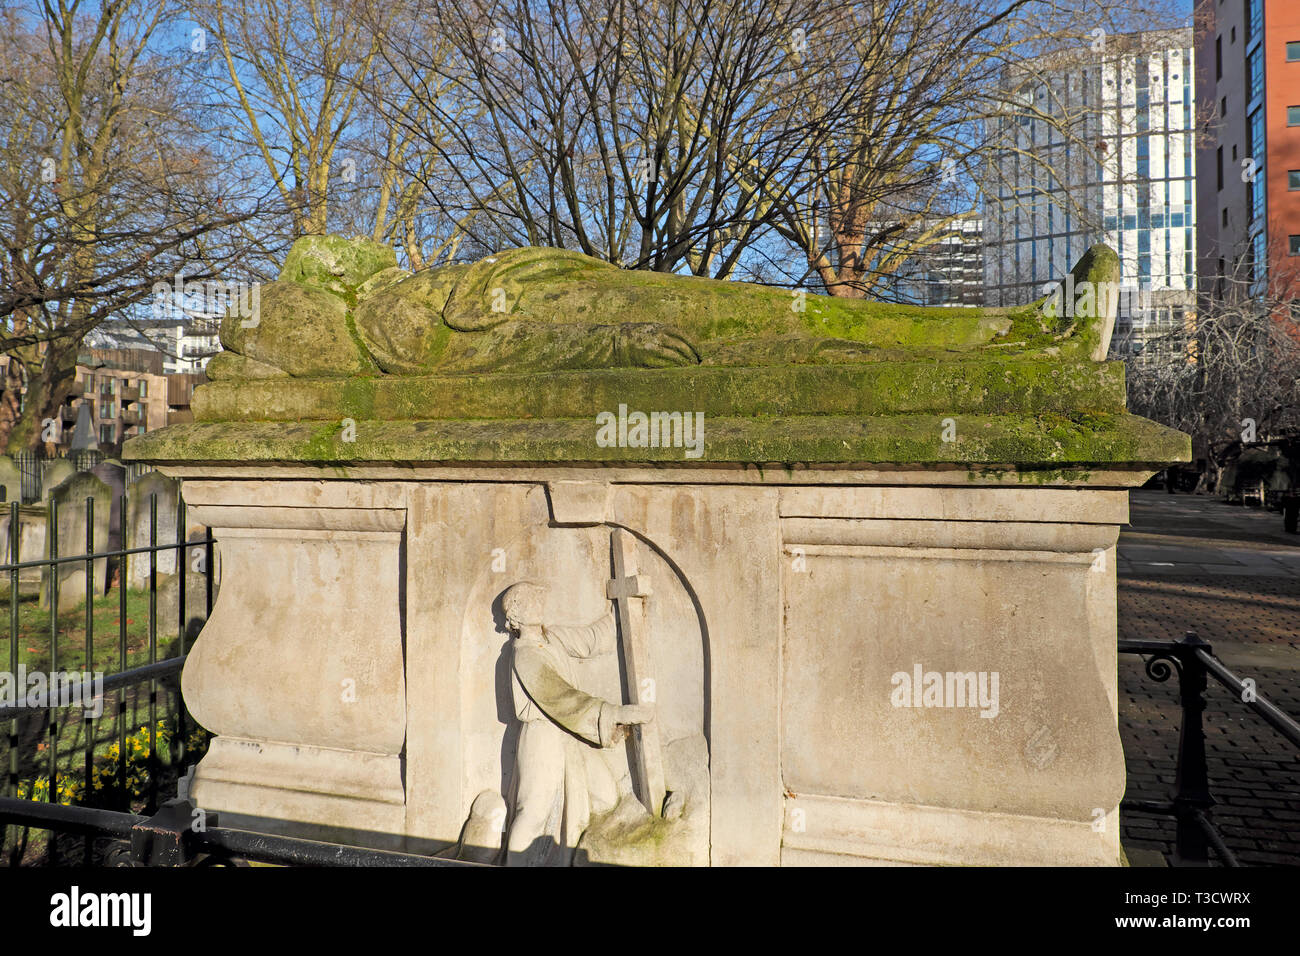 John Bunyan Puritan English author effigy and tombstone & pilgrim from Pilgrims Progress book in Bunhill Fields cemetery London UK  KATHY DEWITT - Stock Image